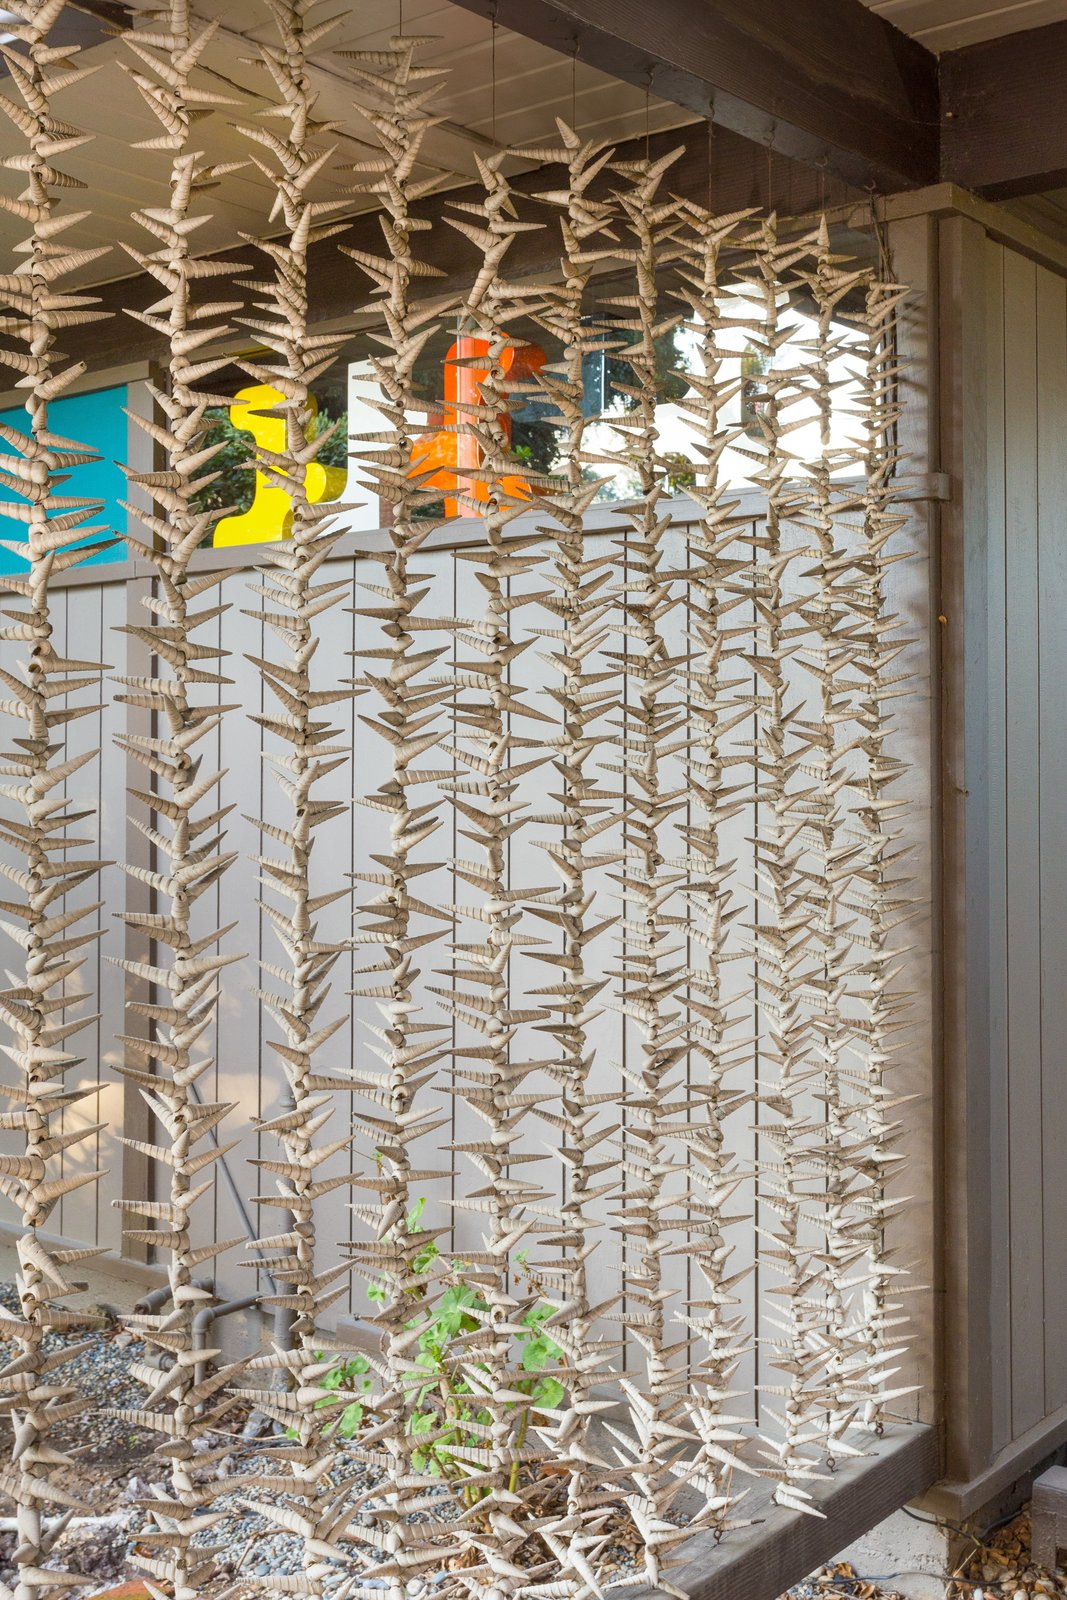 Strung seashells make up an organic screen for the carport, a natural touch added by the seller.  outdoor spaces by Adrian Wieland from Snag This Midcentury Stunner in Southern California For $799K